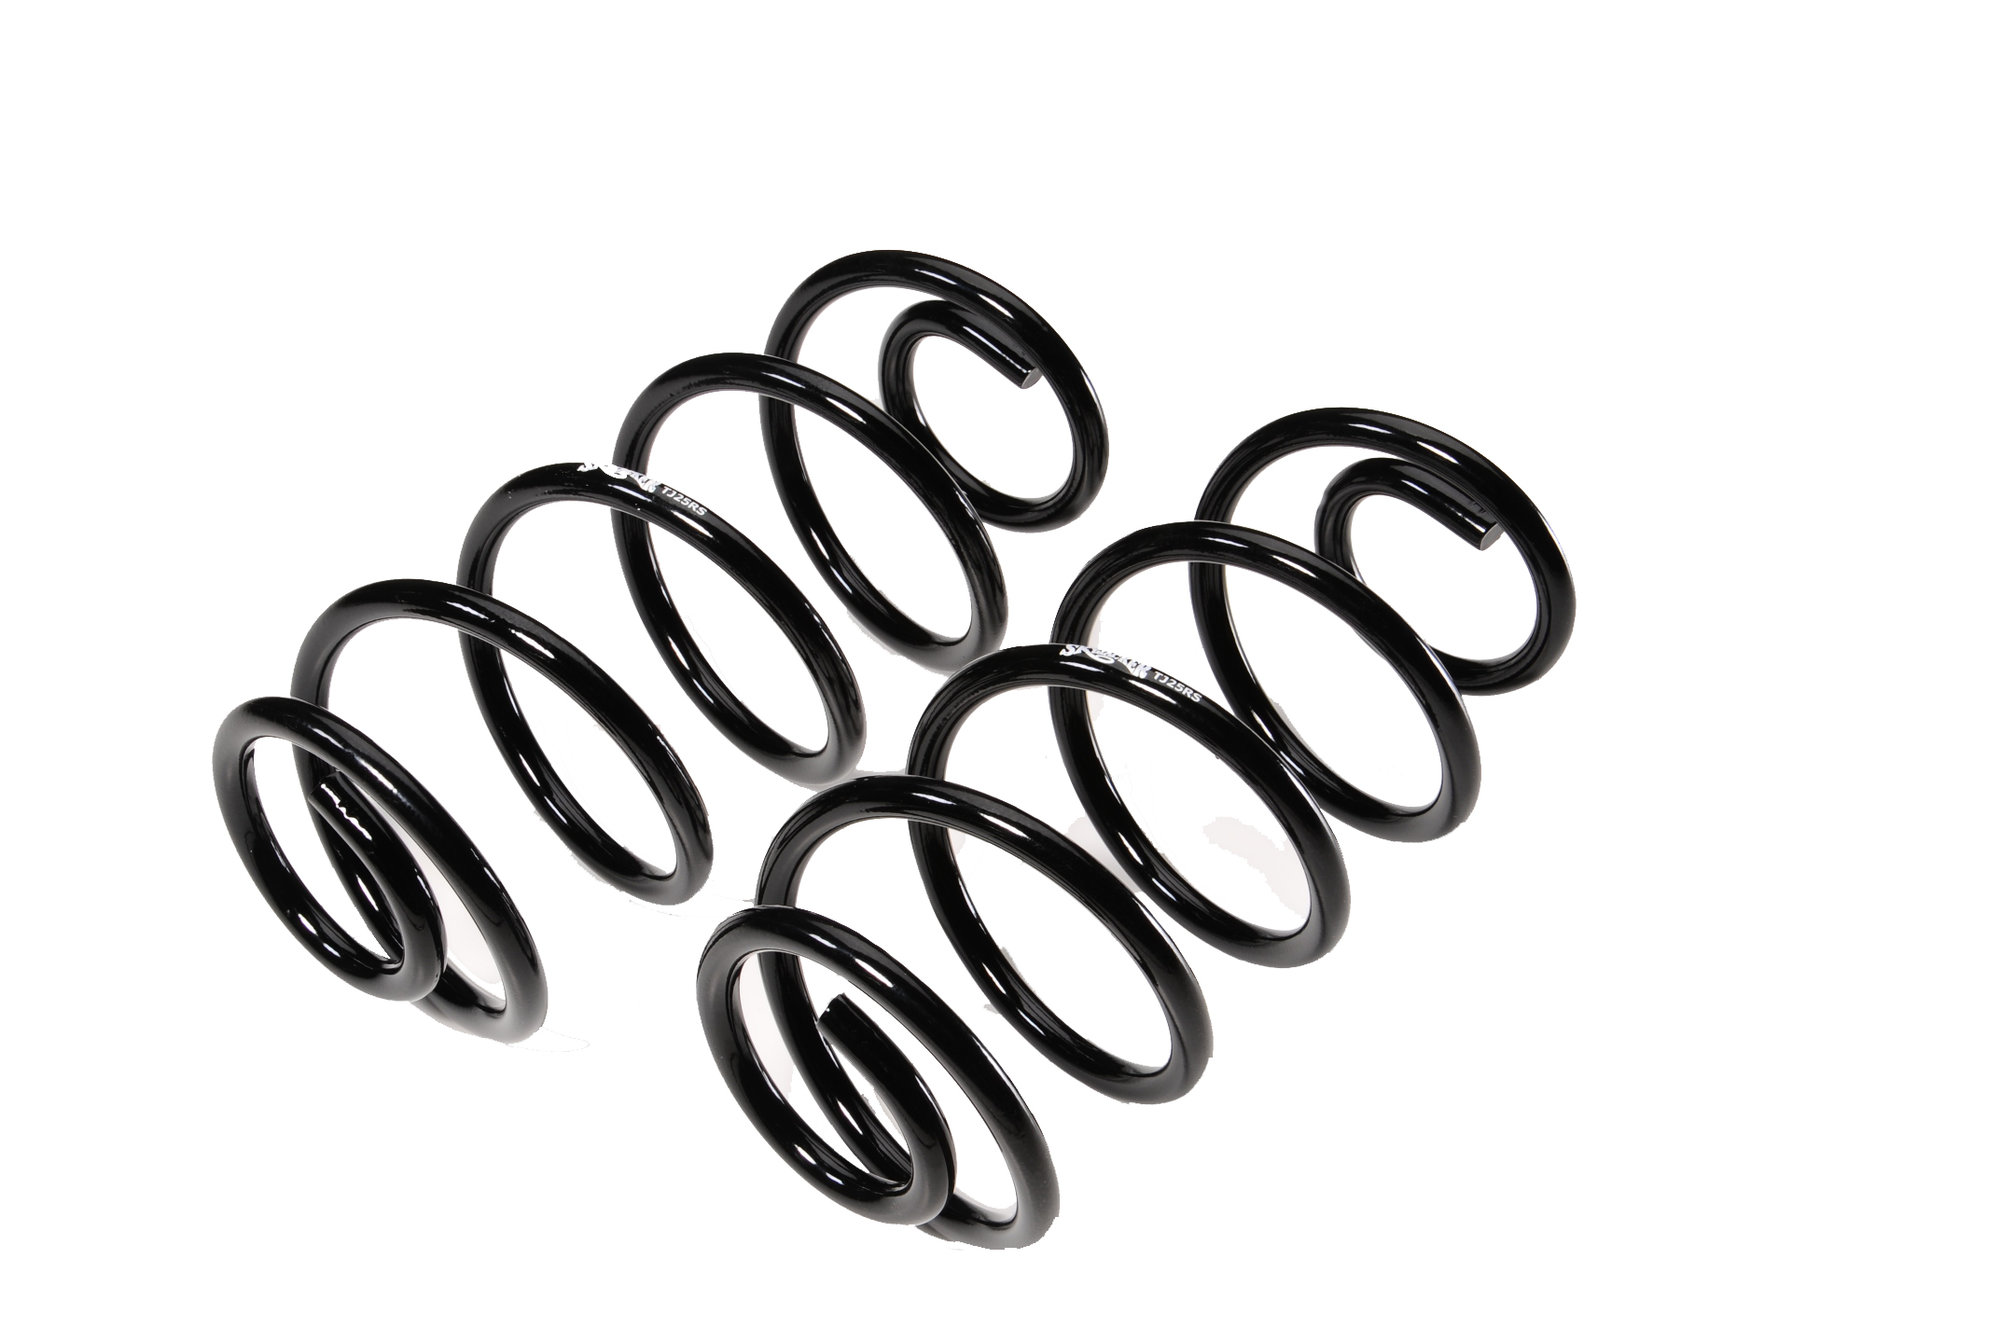 2000x1328 skyjacker tj25r rear coil springs for 97 06 jeep wrangler tj with